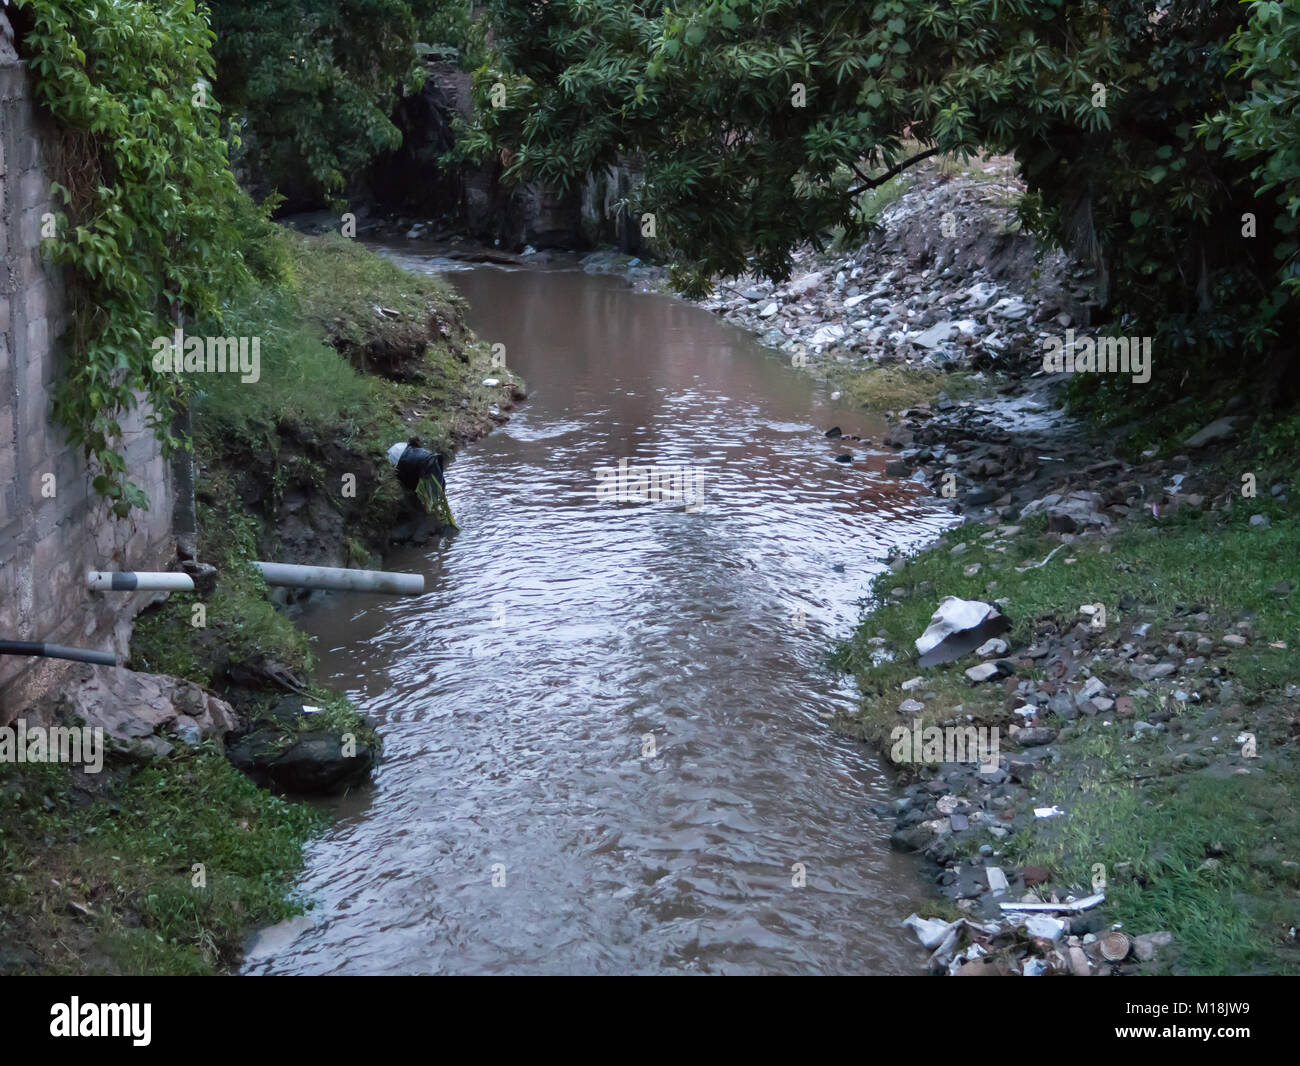 Holguin, Cuba - August 31, 2017: Slow muddy stream with visible trash seen on the sides. Stock Photo